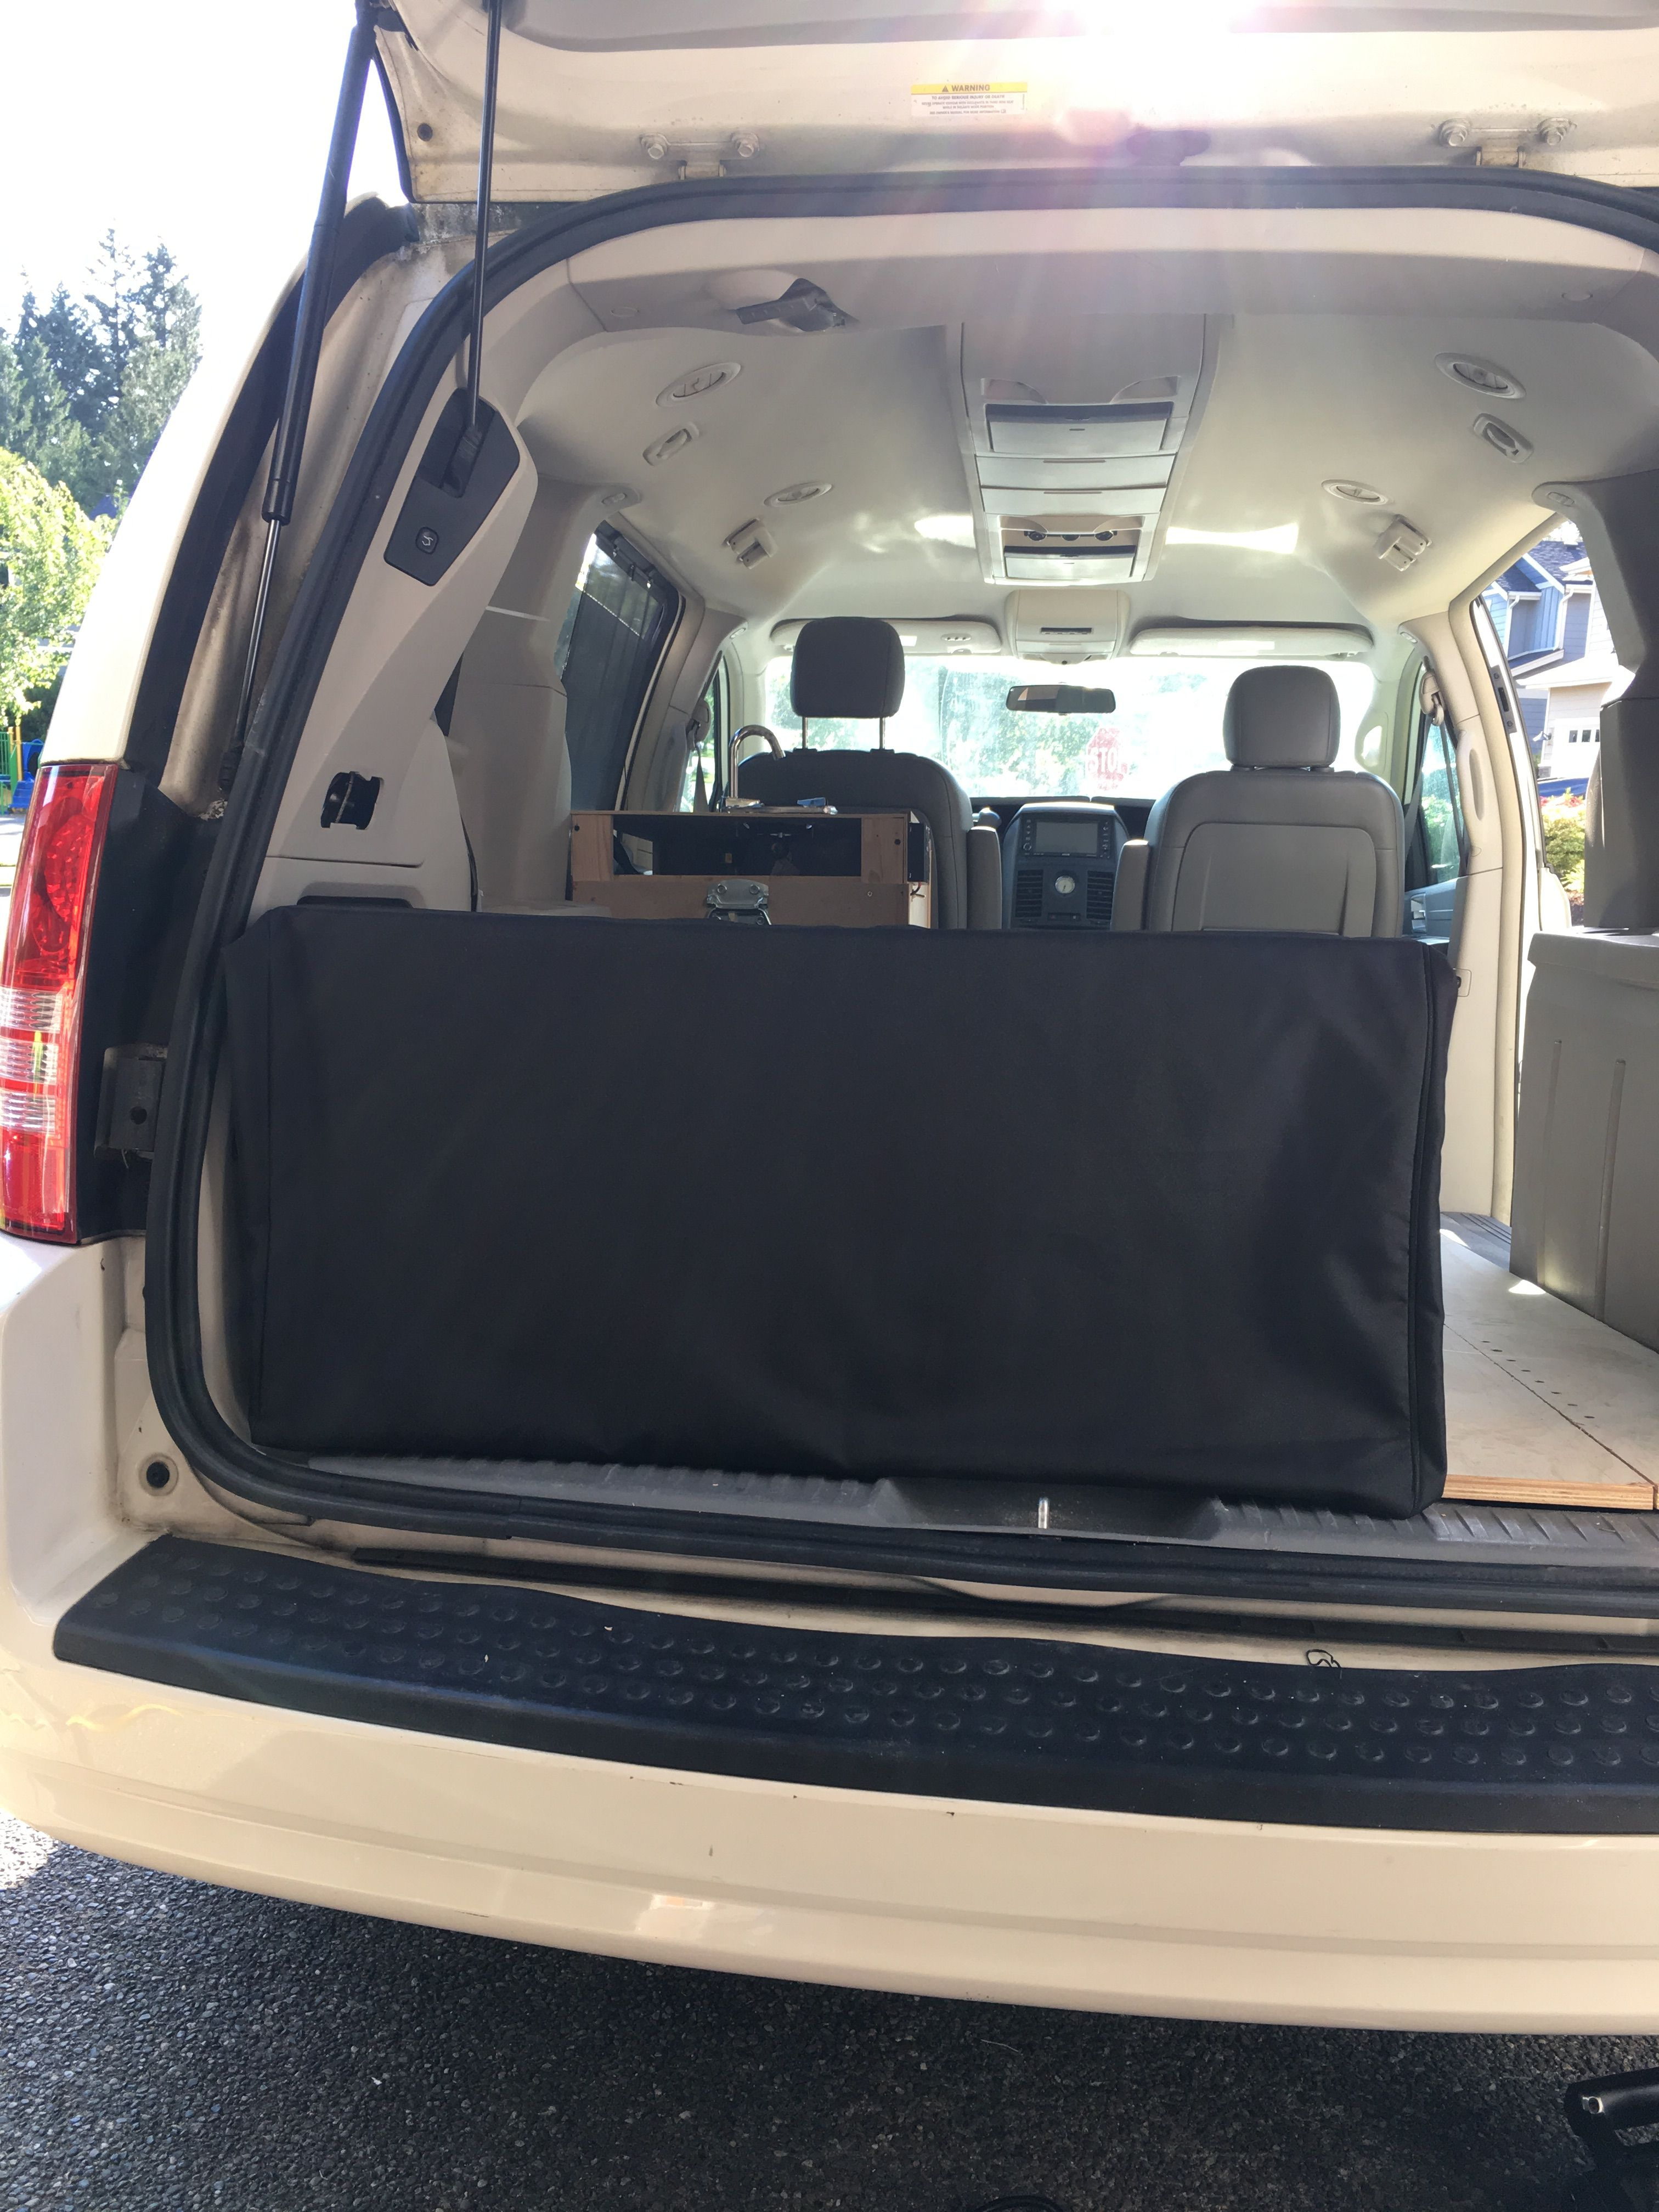 The Bed Chrysler Town And Country Camper Van Camper